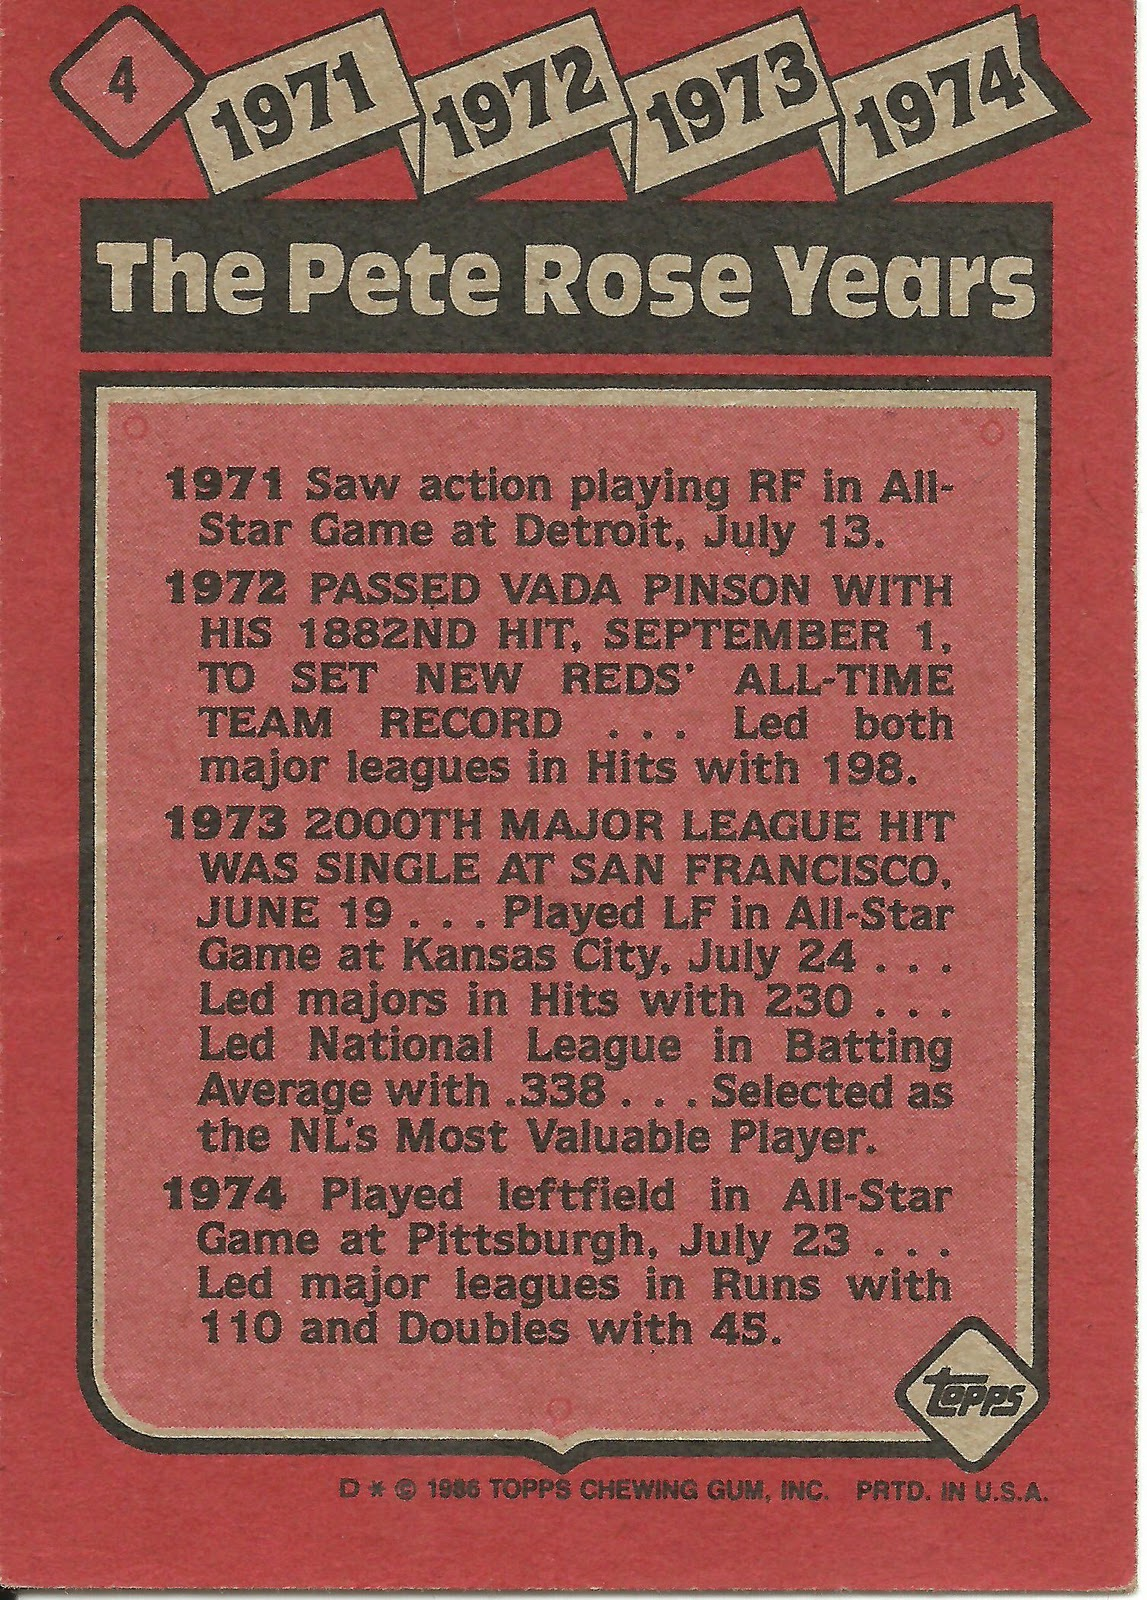 1986 Topps Blog 4 The Pete Rose Years 1971 1974